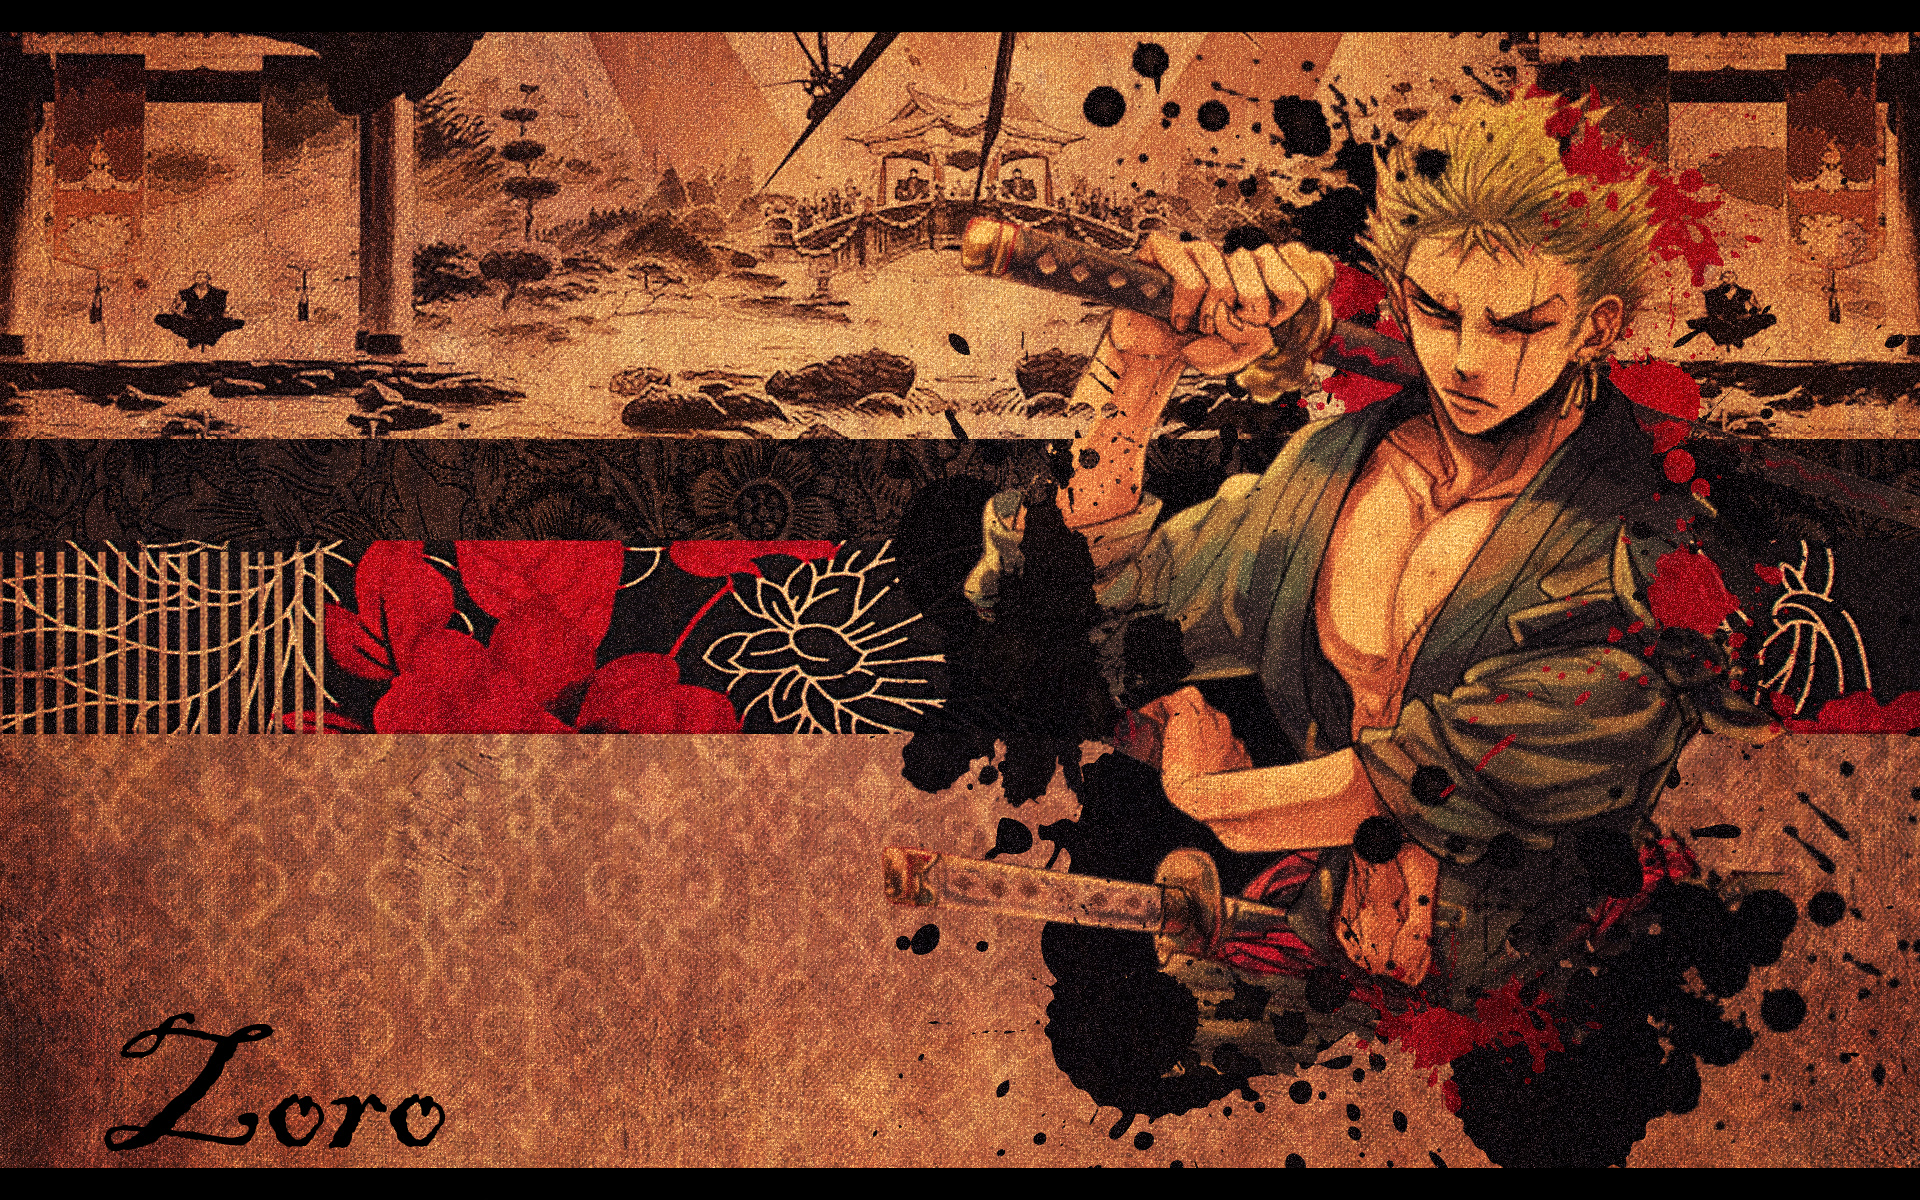 Roronoa Zoro Wallpaper One Piece Zoro 1920x1200 Download Hd Wallpaper Wallpapertip